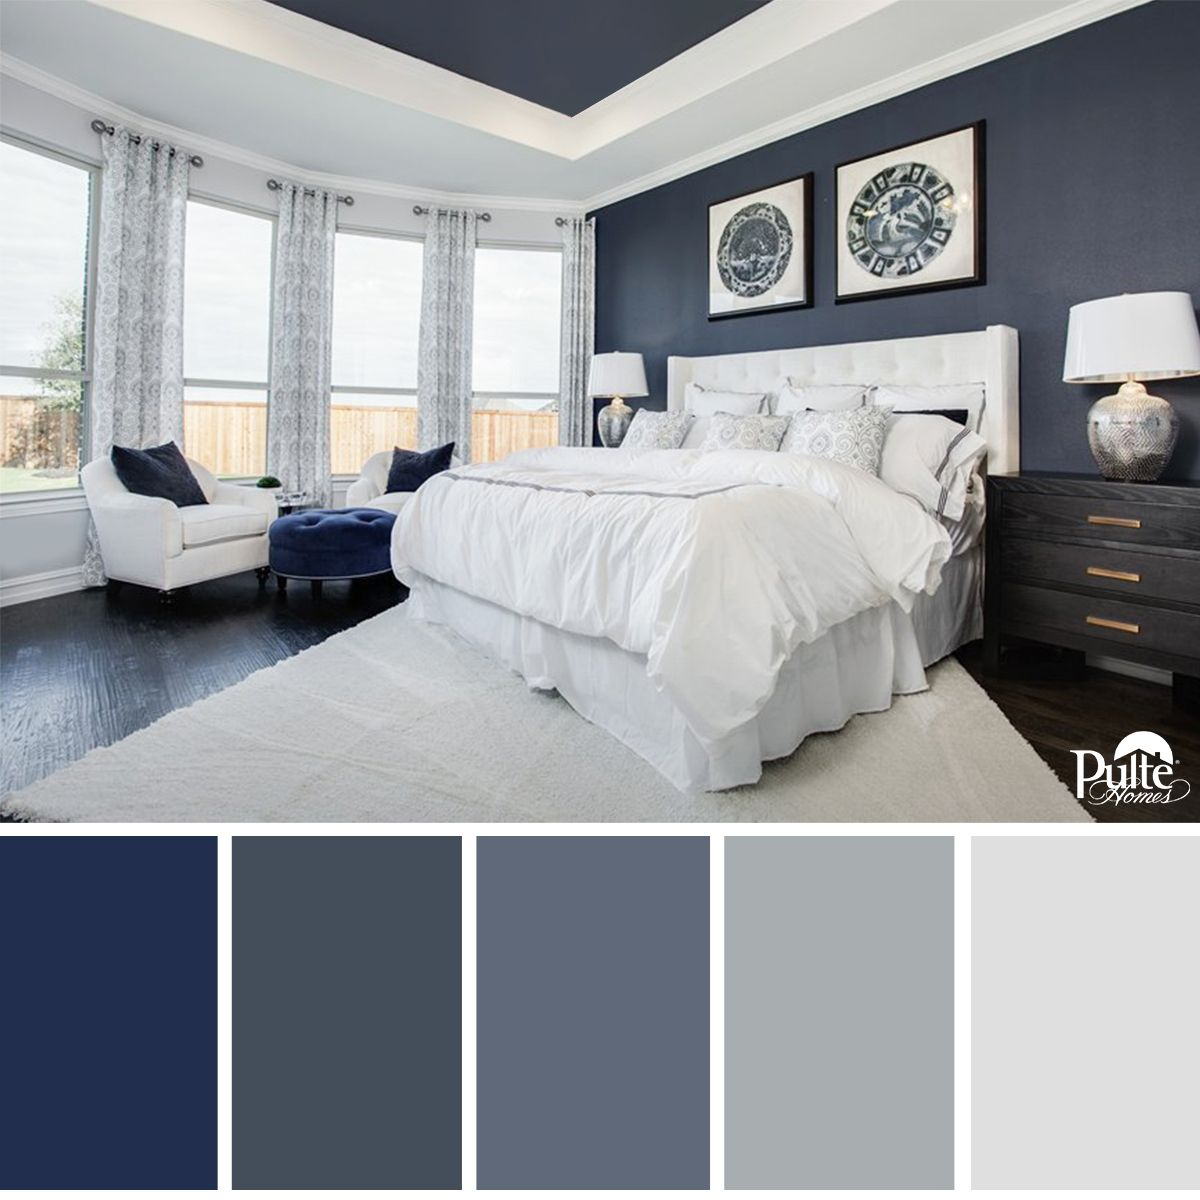 This Bedroom Design Has The Right Idea. The Rich Blue Color Palette And Decor Create A Dreamy